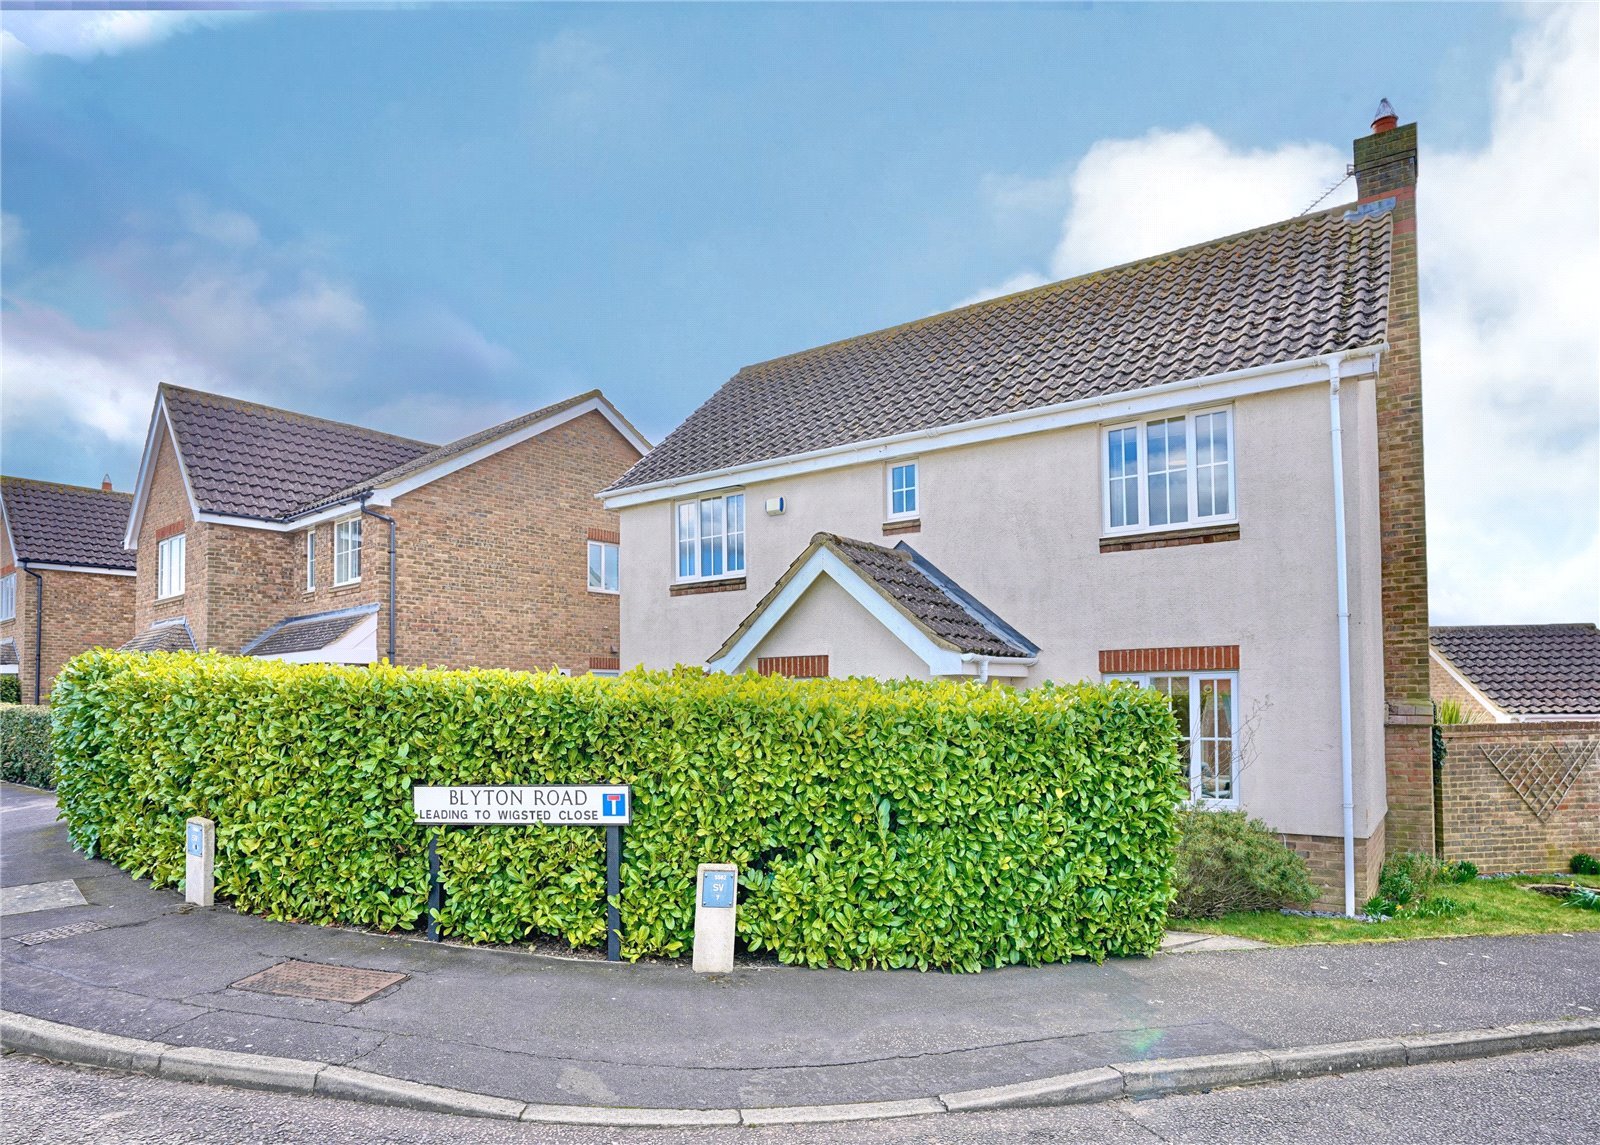 4 bed house for sale in Papworth Everard, CB23 3XY 0